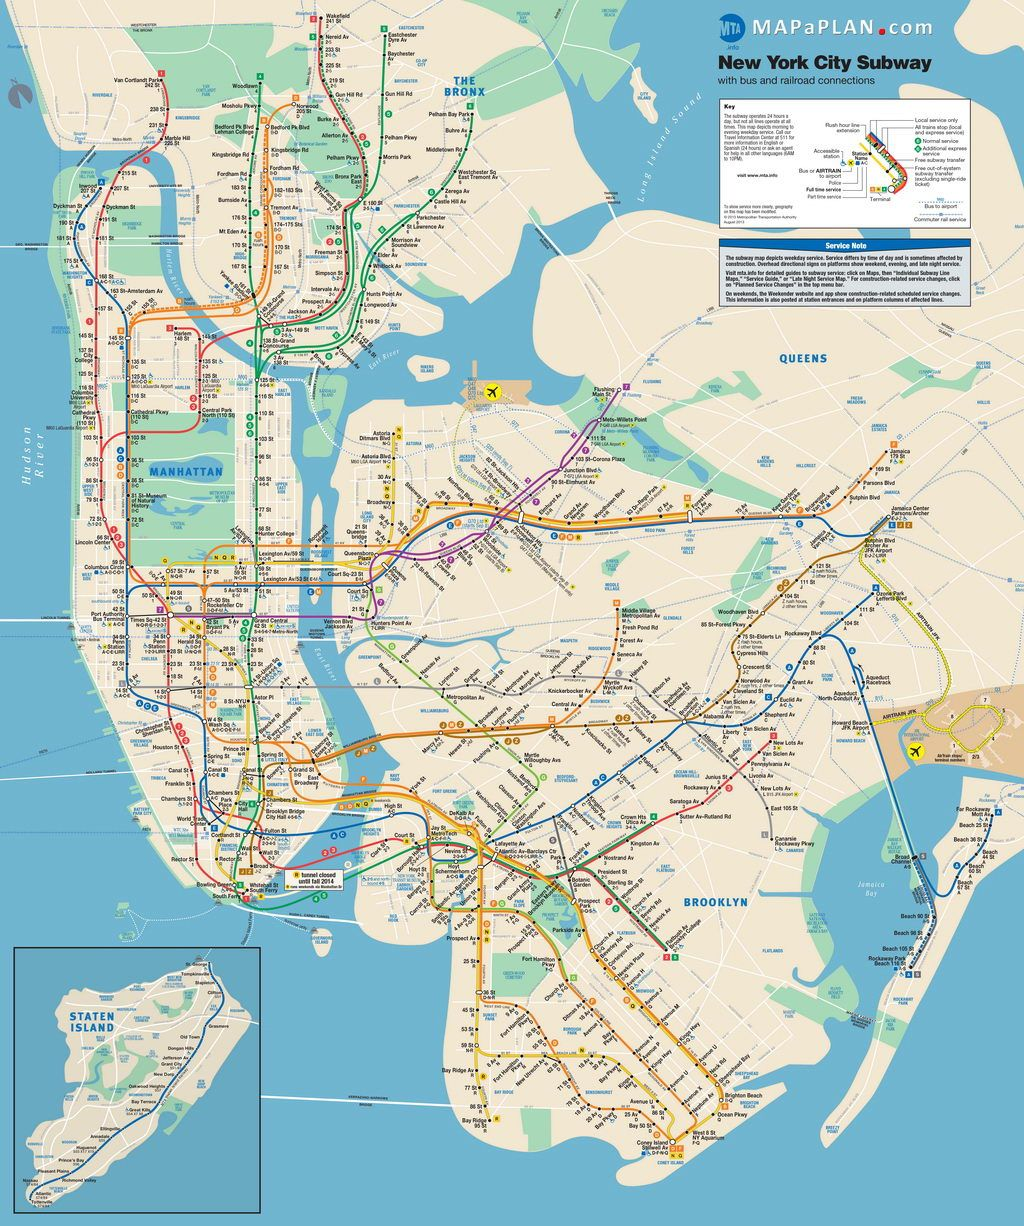 greatthingstodowithkidschildreninteractivecolorfulnew – Tourist Map Of New York